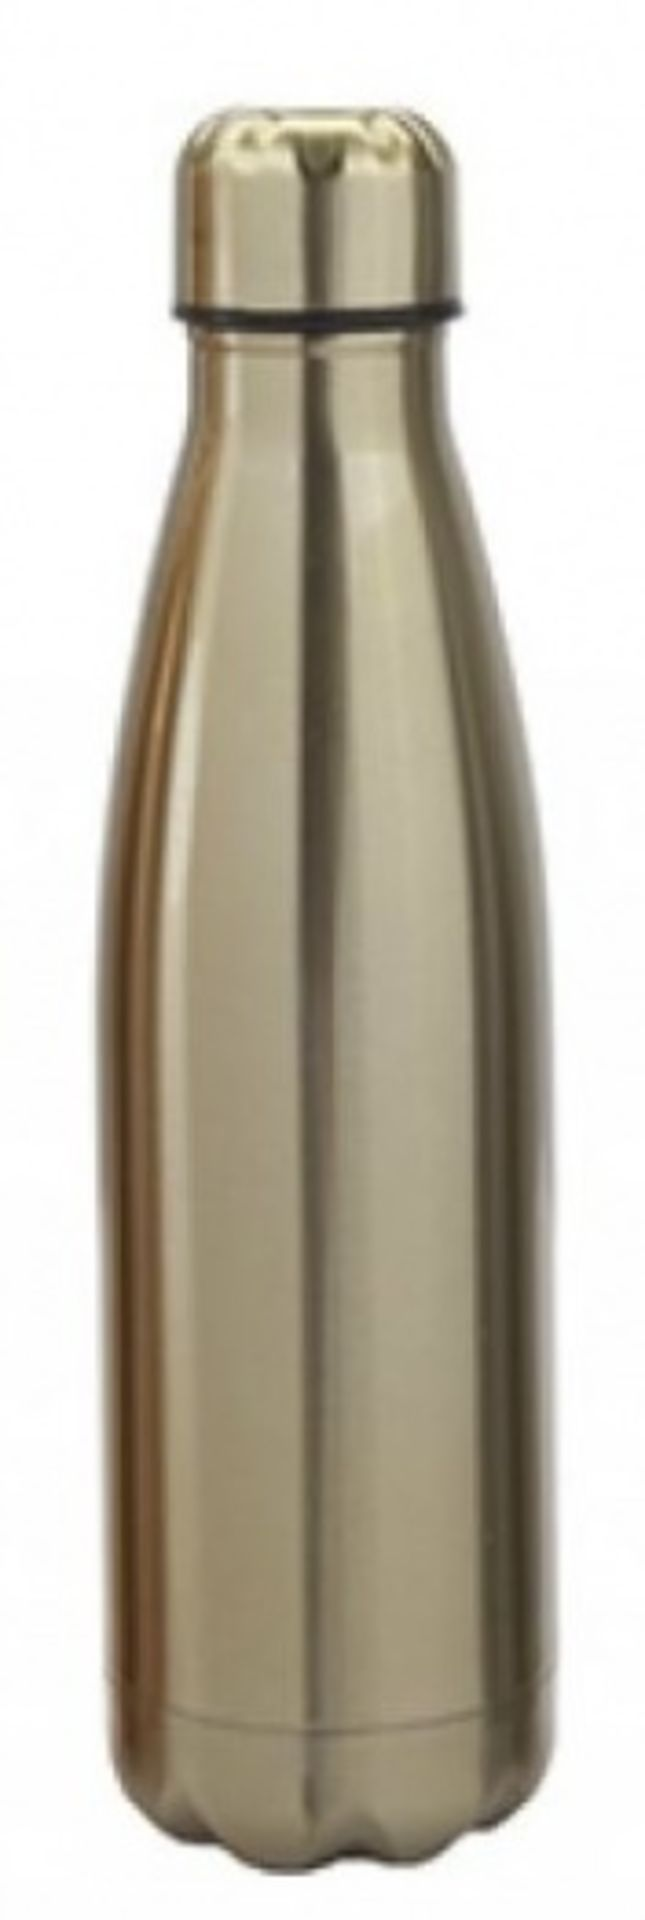 Lot 10199 - V Brand New Vacuum Insulated Steel Double Wall Vacuum Drinking Bottle (Colours May Vary)